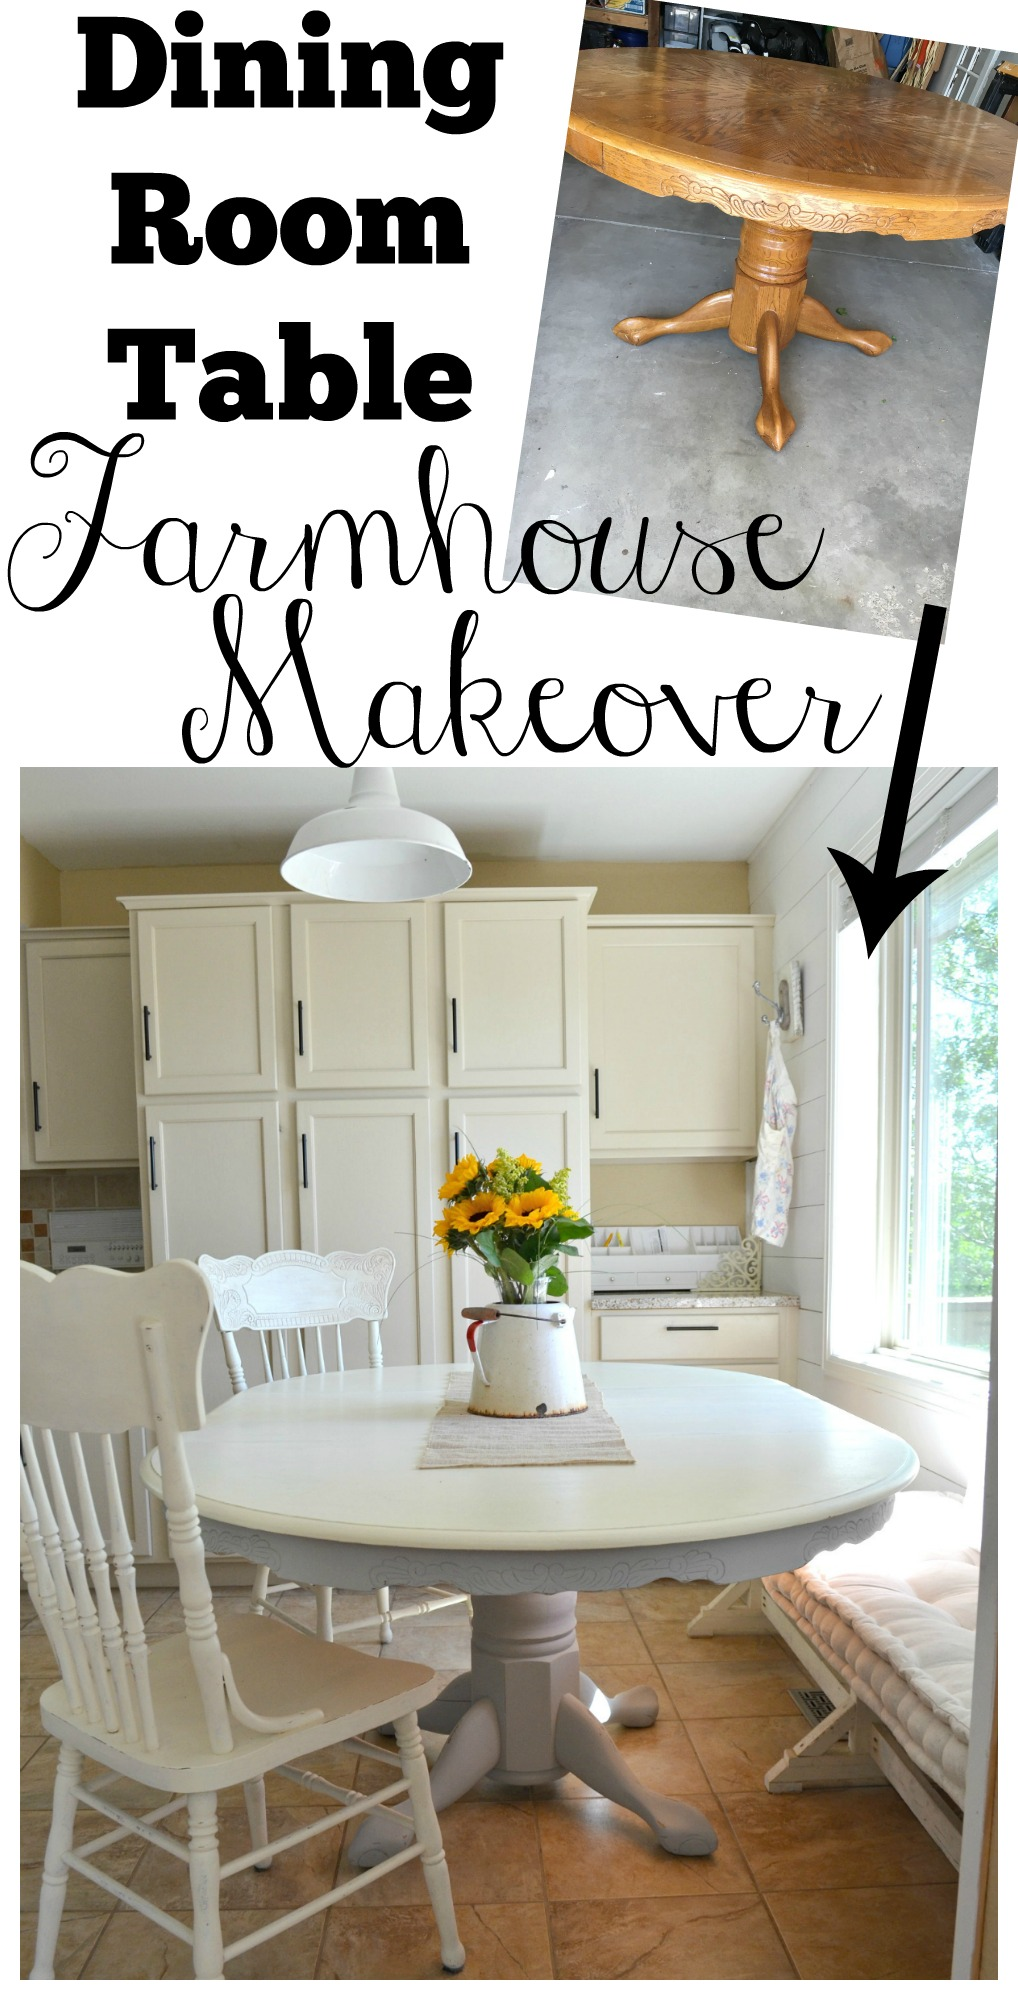 Dining Room Table Farmhouse Makeover Little Vintage Nest